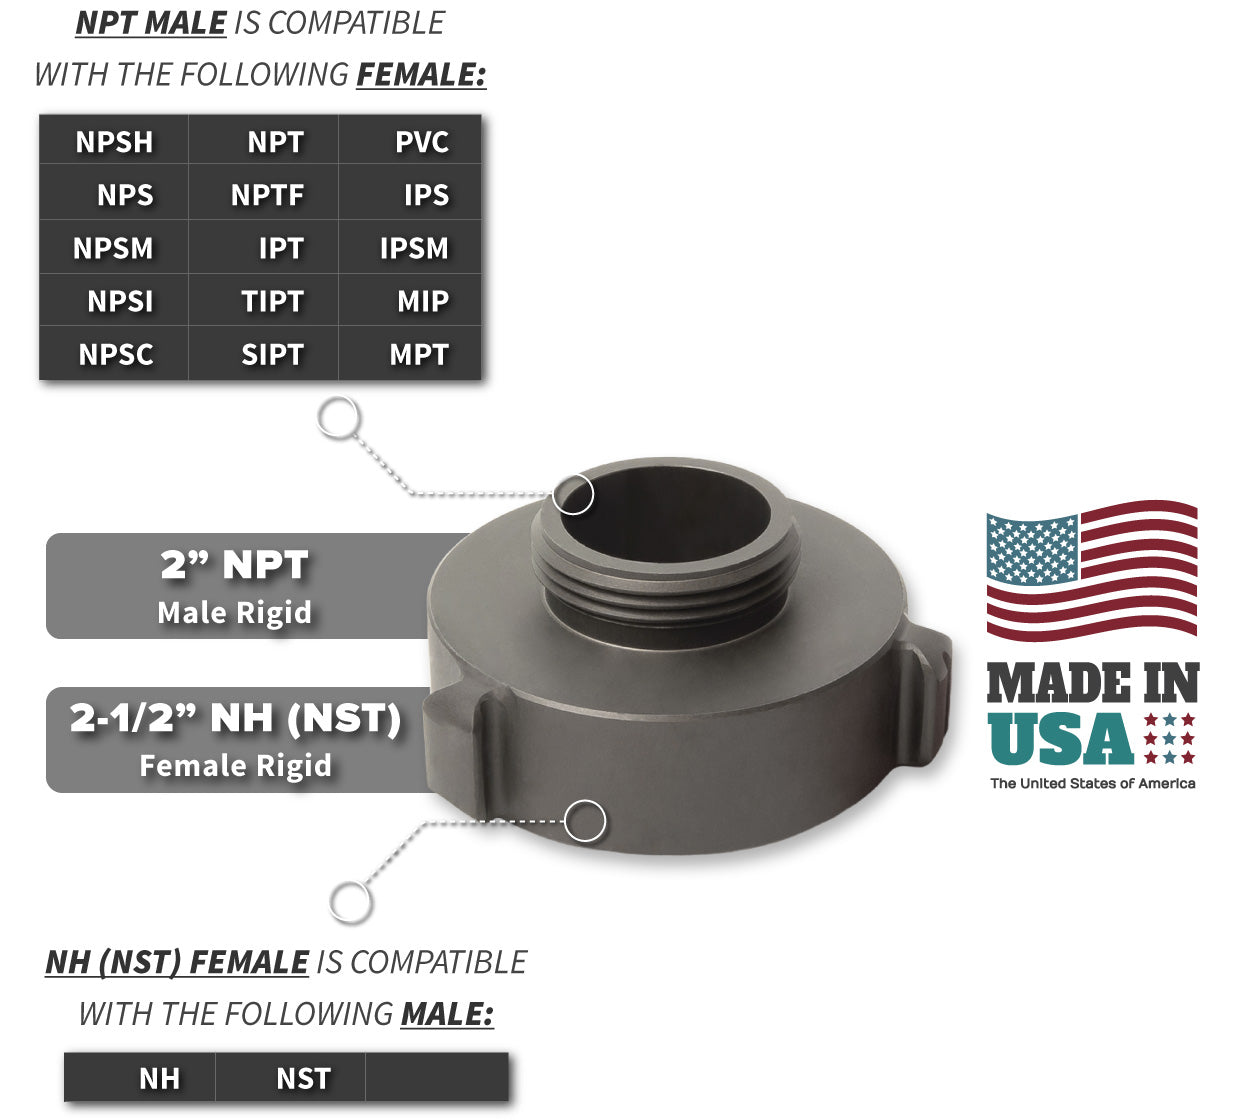 2.5 Inch NH-NST Female x 2 Inch NPT Male Compatibility Thread Chart